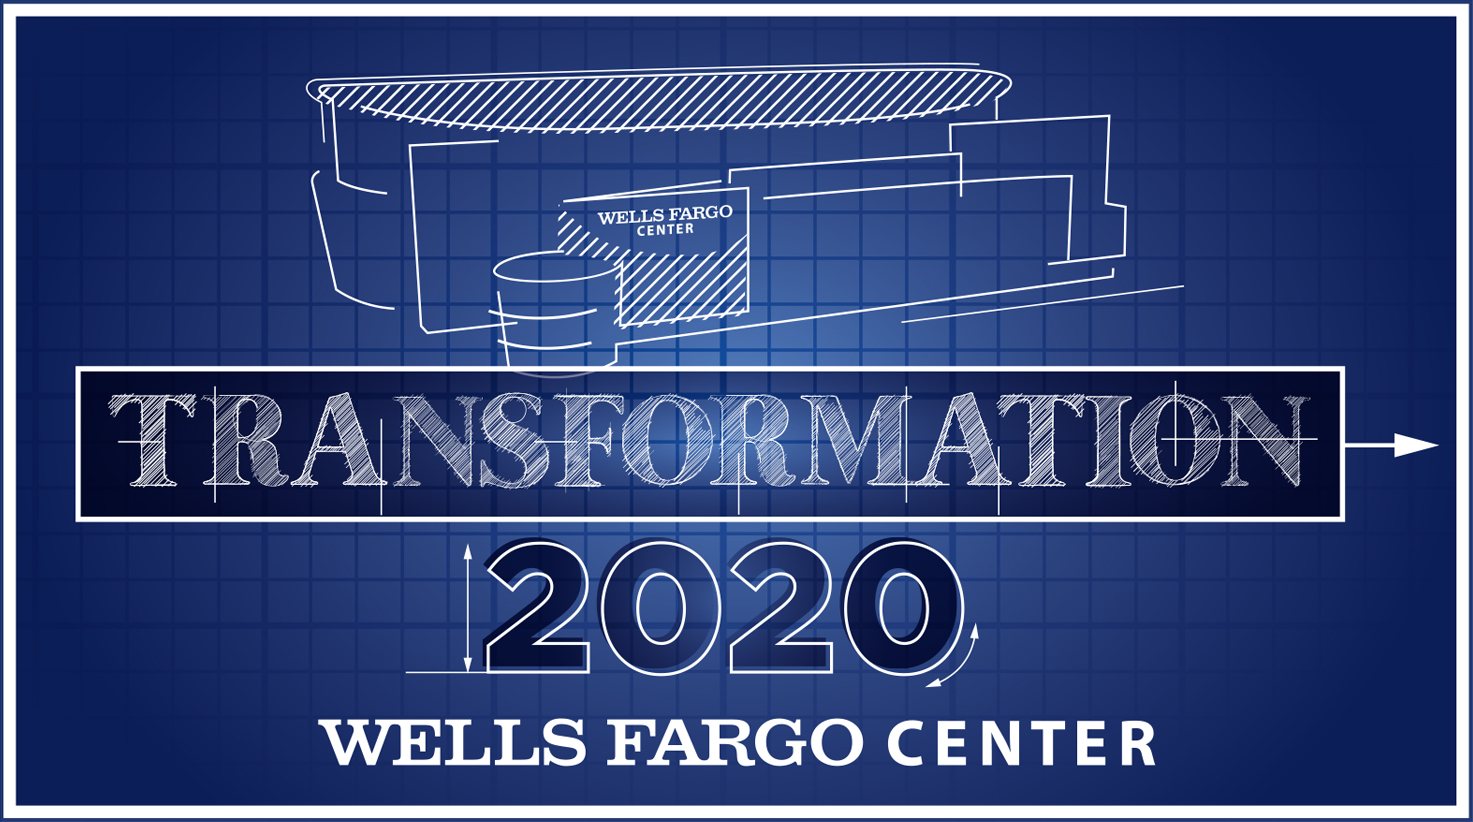 Wells Fargo Center Continues 'Transformation 2020' Initiative With